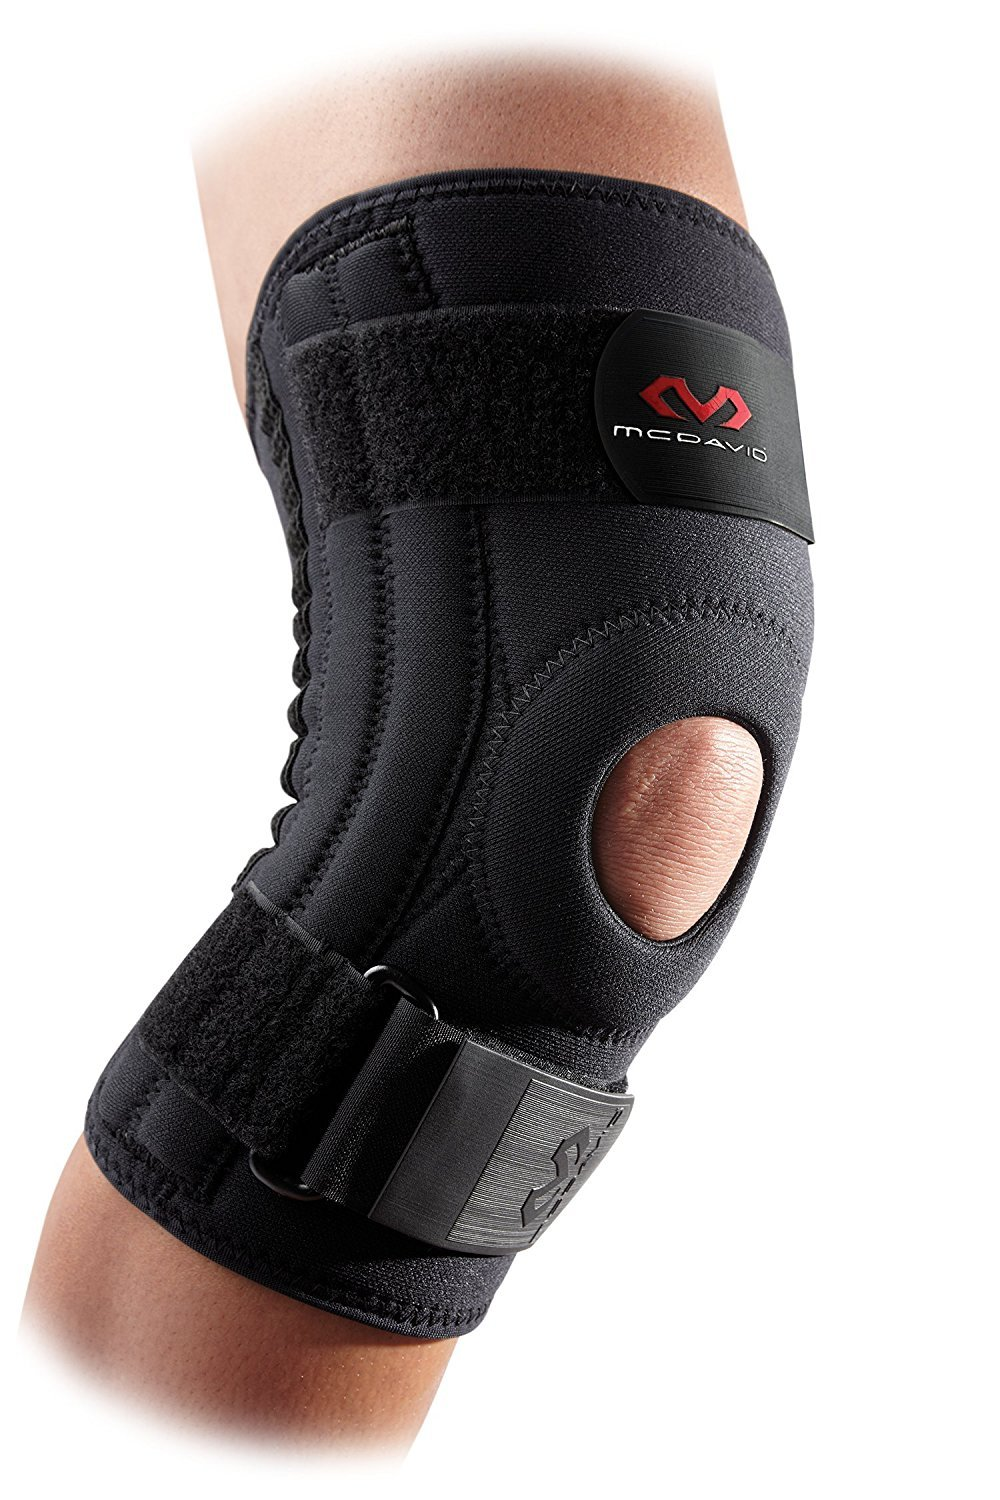 High Quality Knee Brace, Knee Support & Compression for Knee Stability, Patellar Tendon Support, Tendonitis Pain Relief, Ligament Support, Hyperextension, Chondromalacia & Injury Recovery, for Men & Women, Sold as Single Units (1) B07C2JW4F7